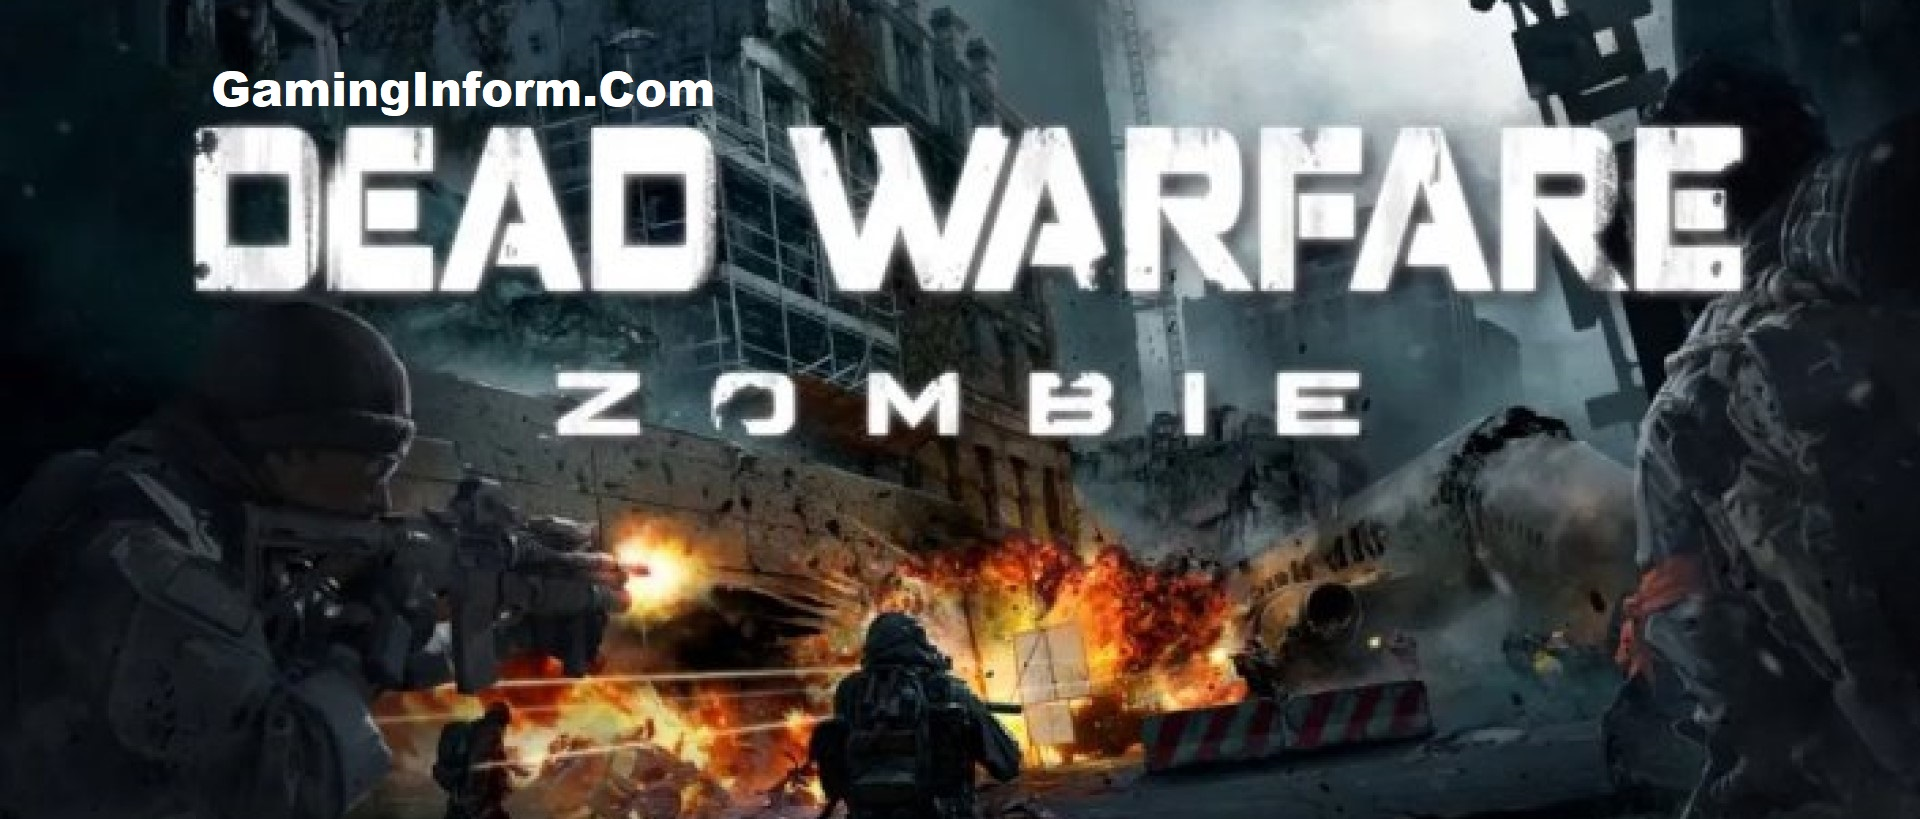 DEAD WARFARE MOD APK Latest Version For Android Install Free